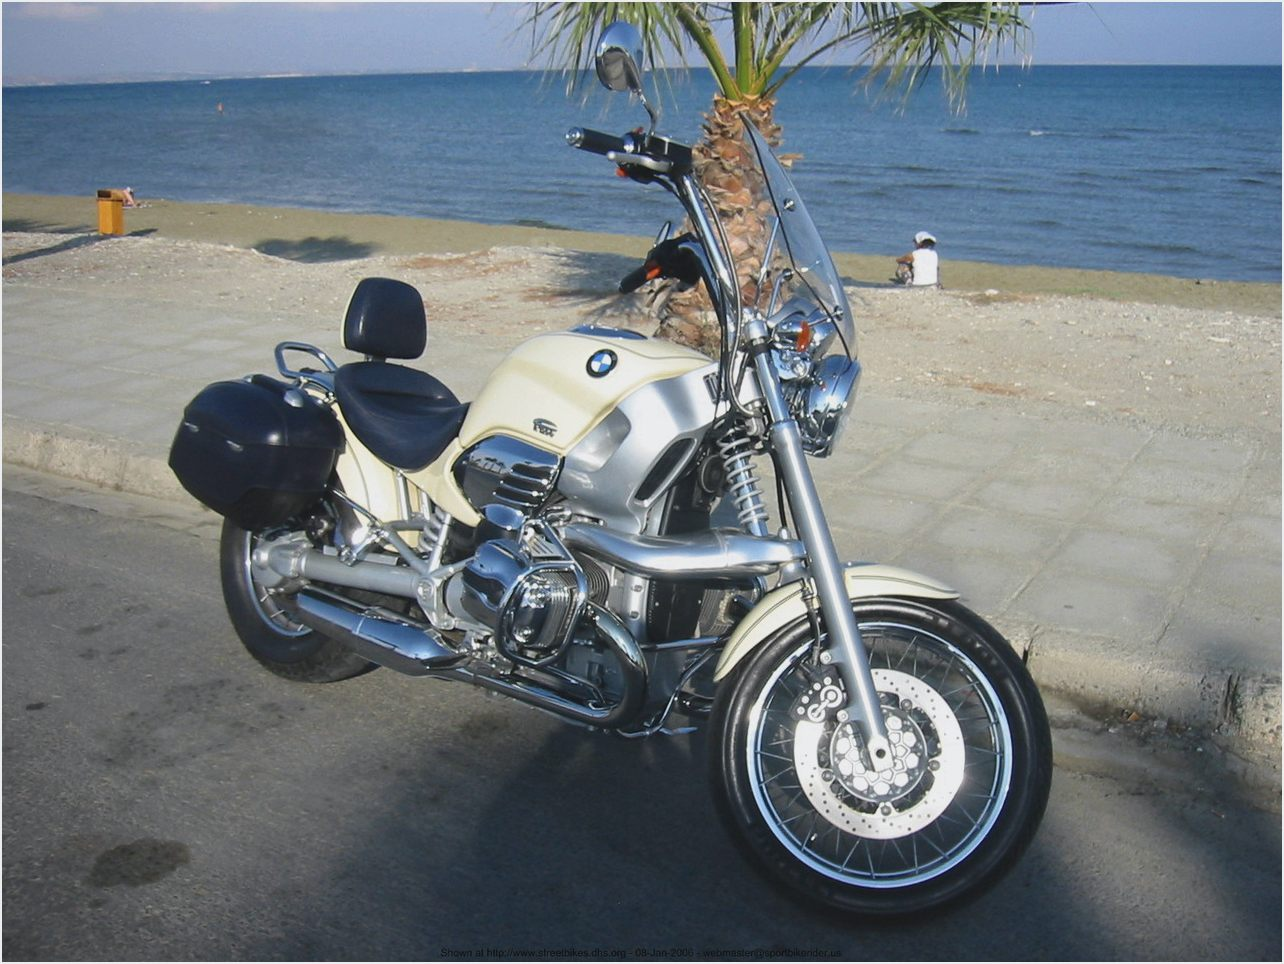 BMW R1200C Avantgarde 2001 images #7608